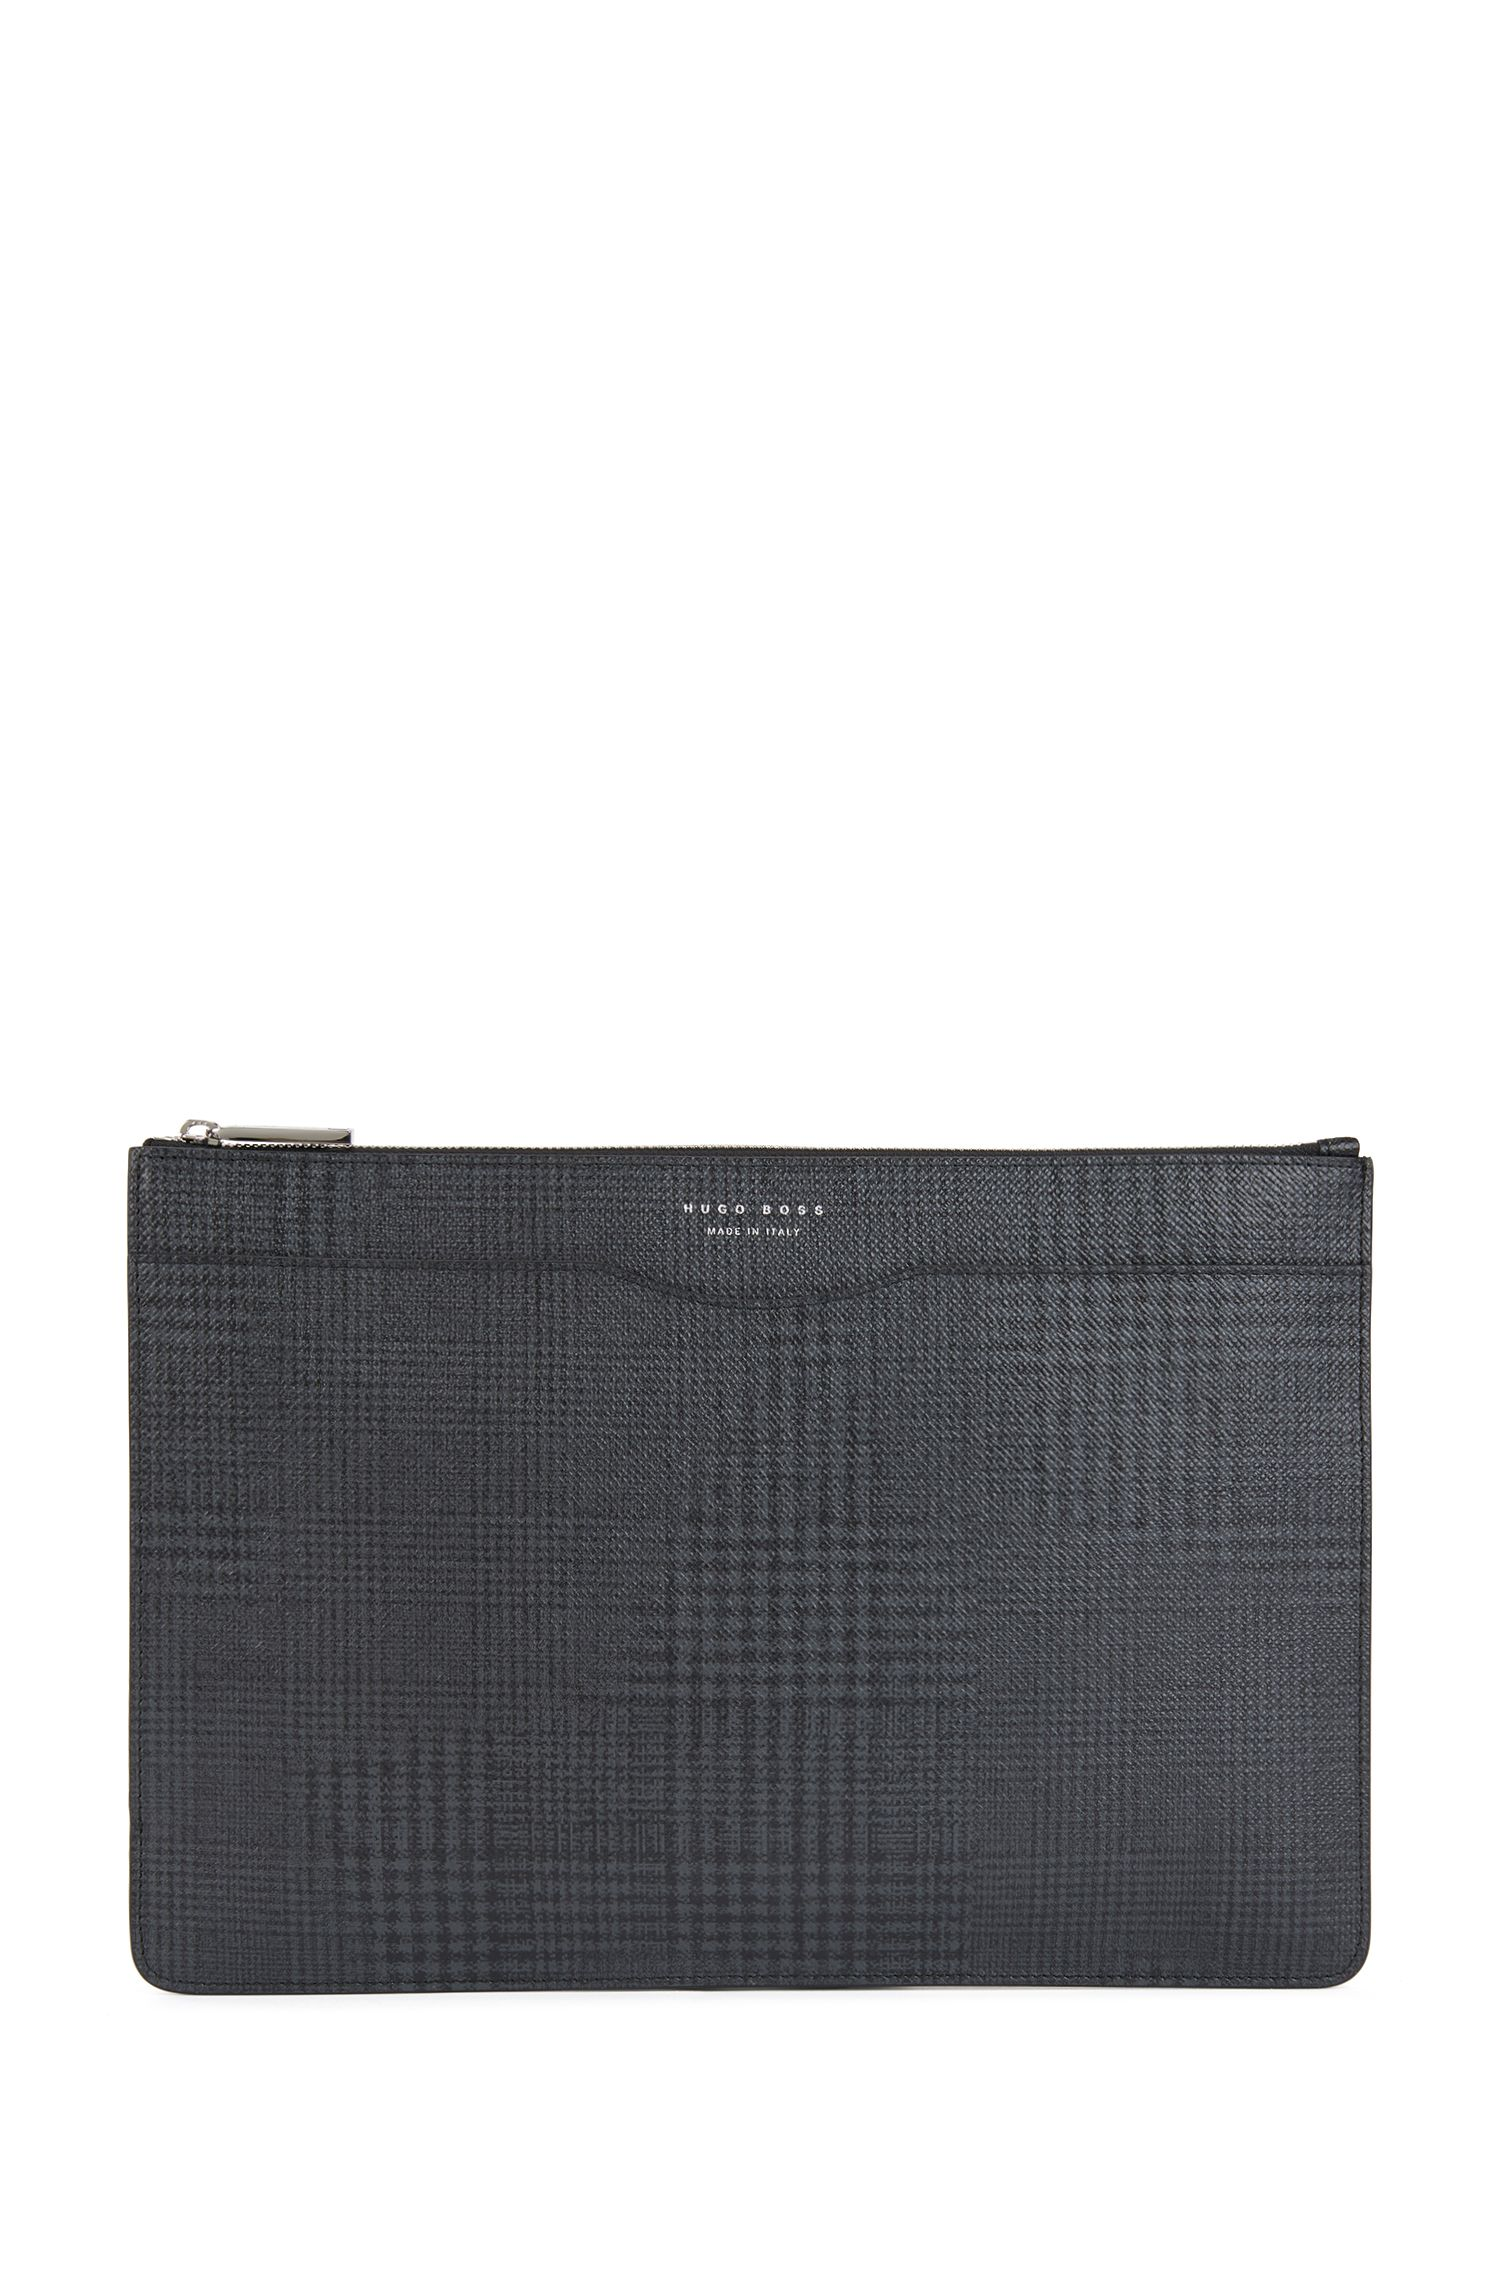 Signature Collection portfolio case in check-print calf leather, Patterned